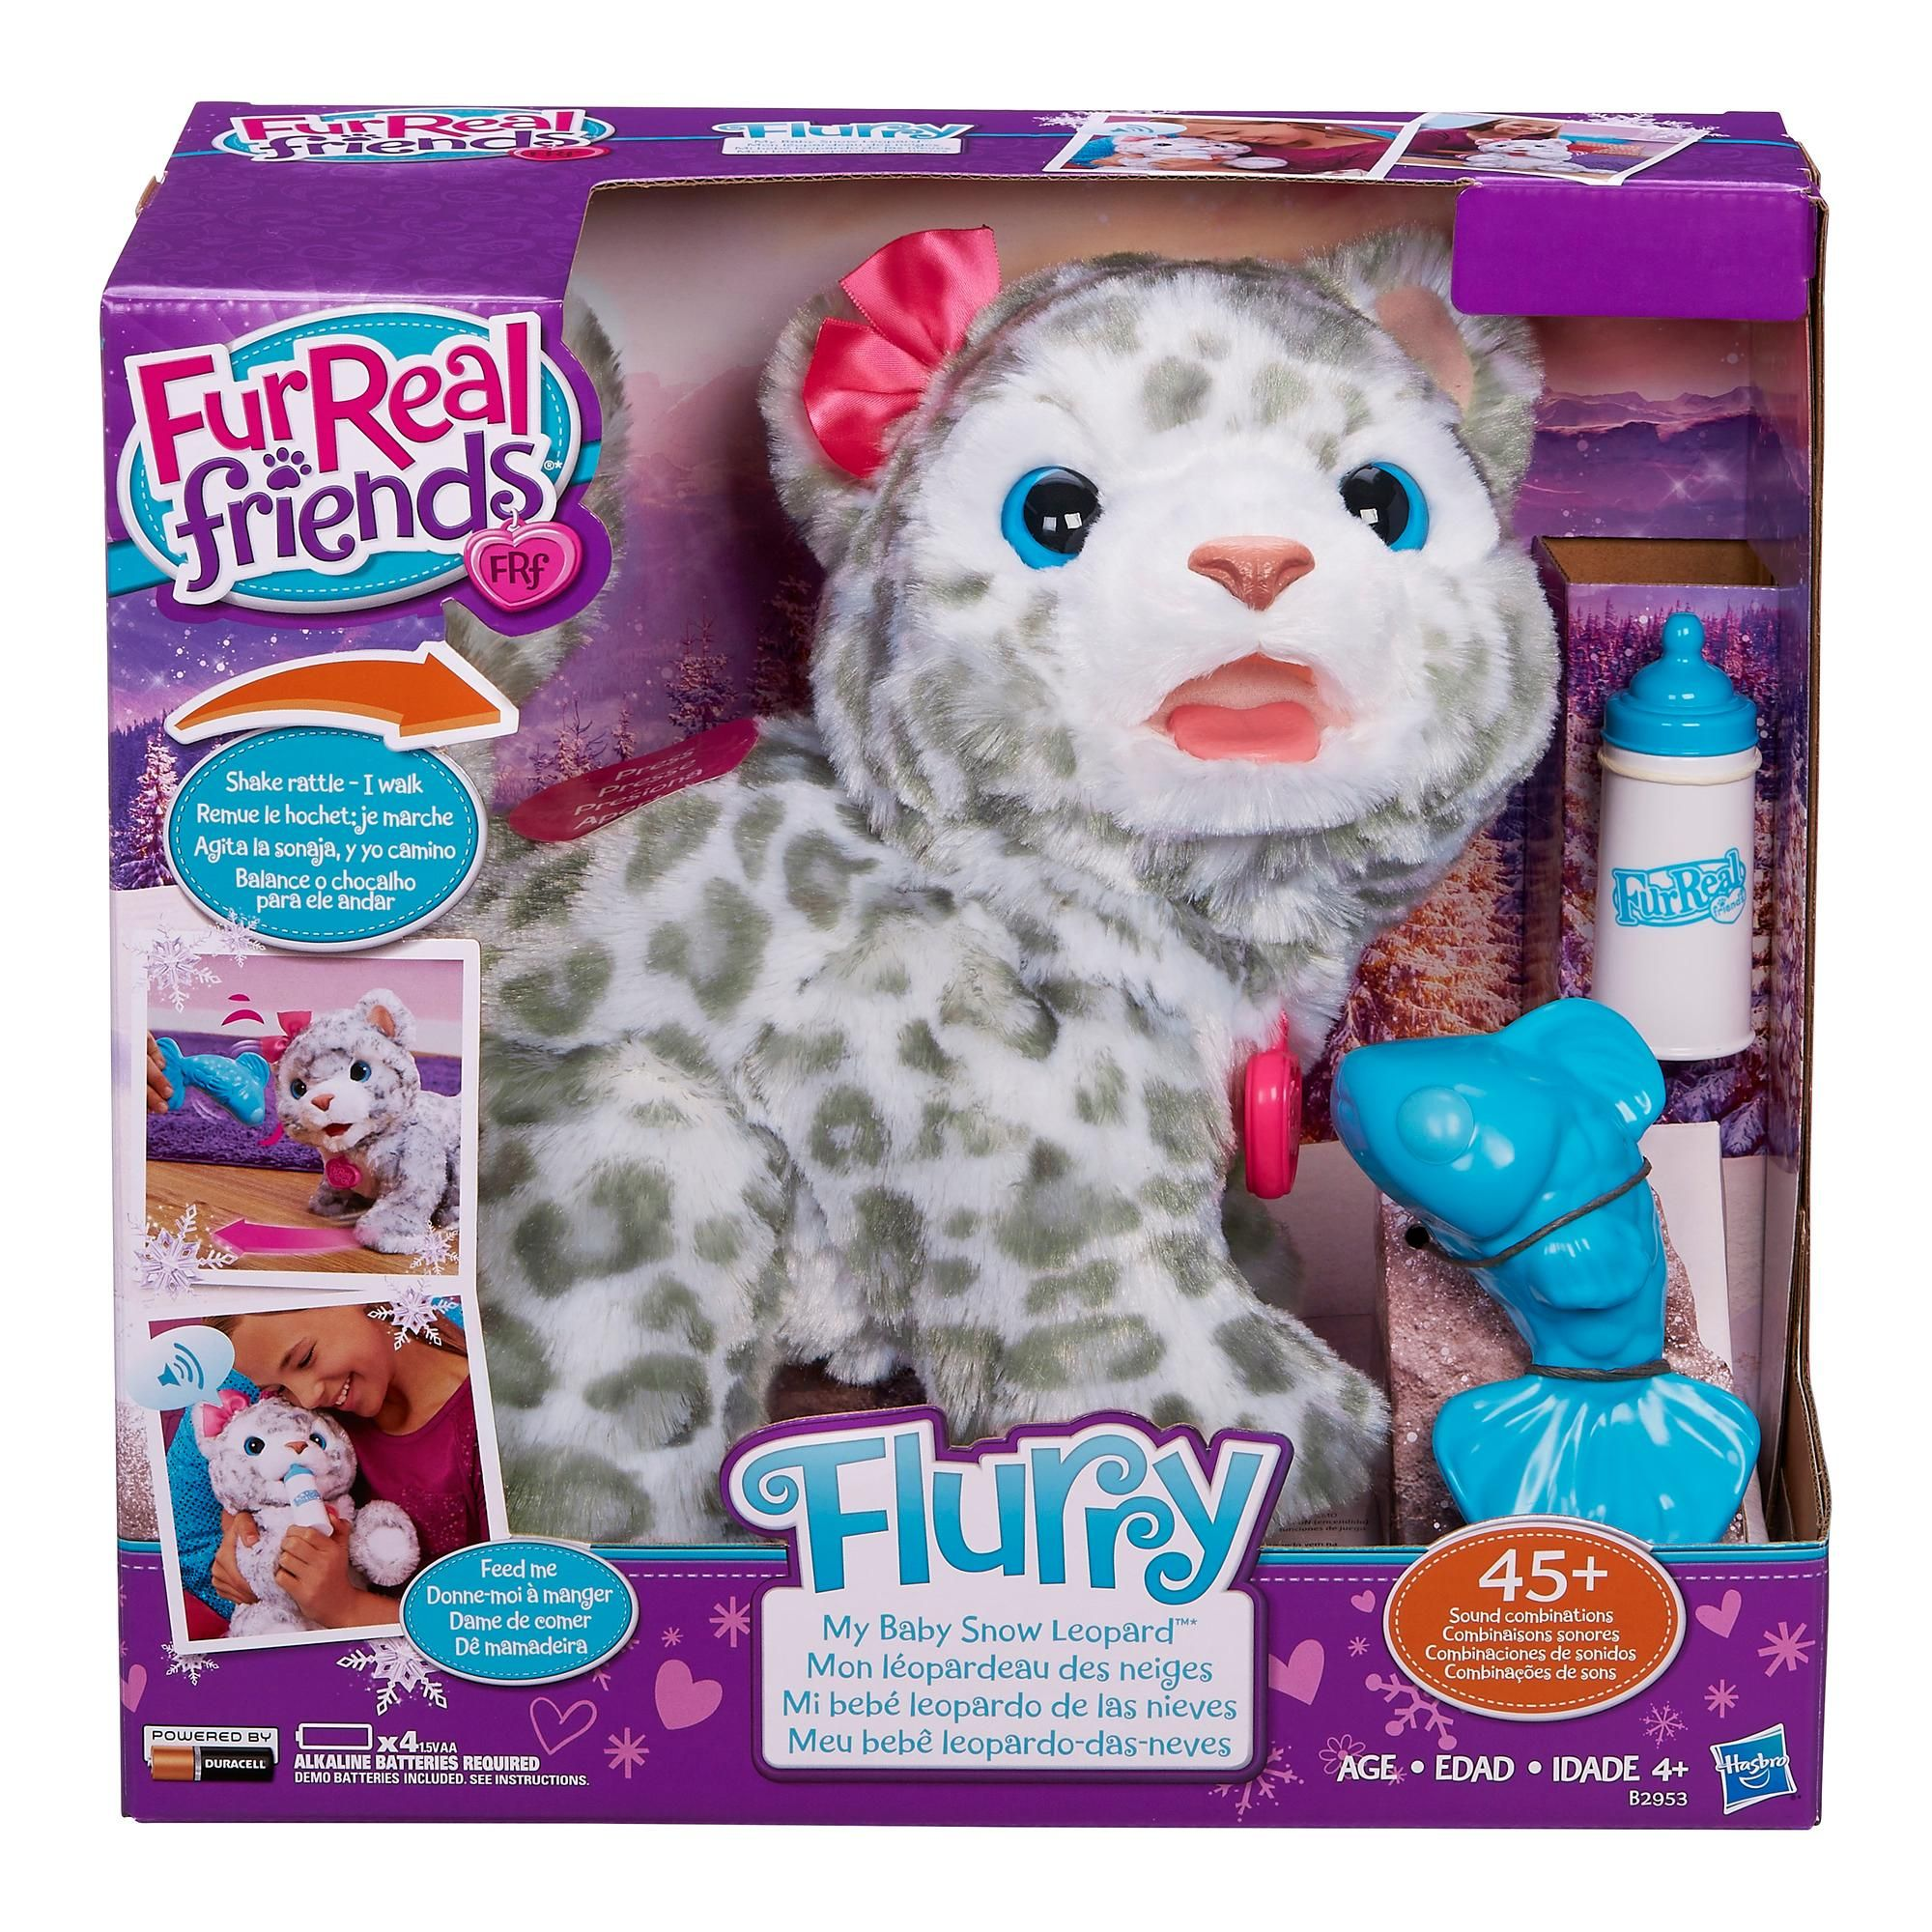 Furreal Friends Flurry My Baby Snow Leopard Pet Amazon Exclusive